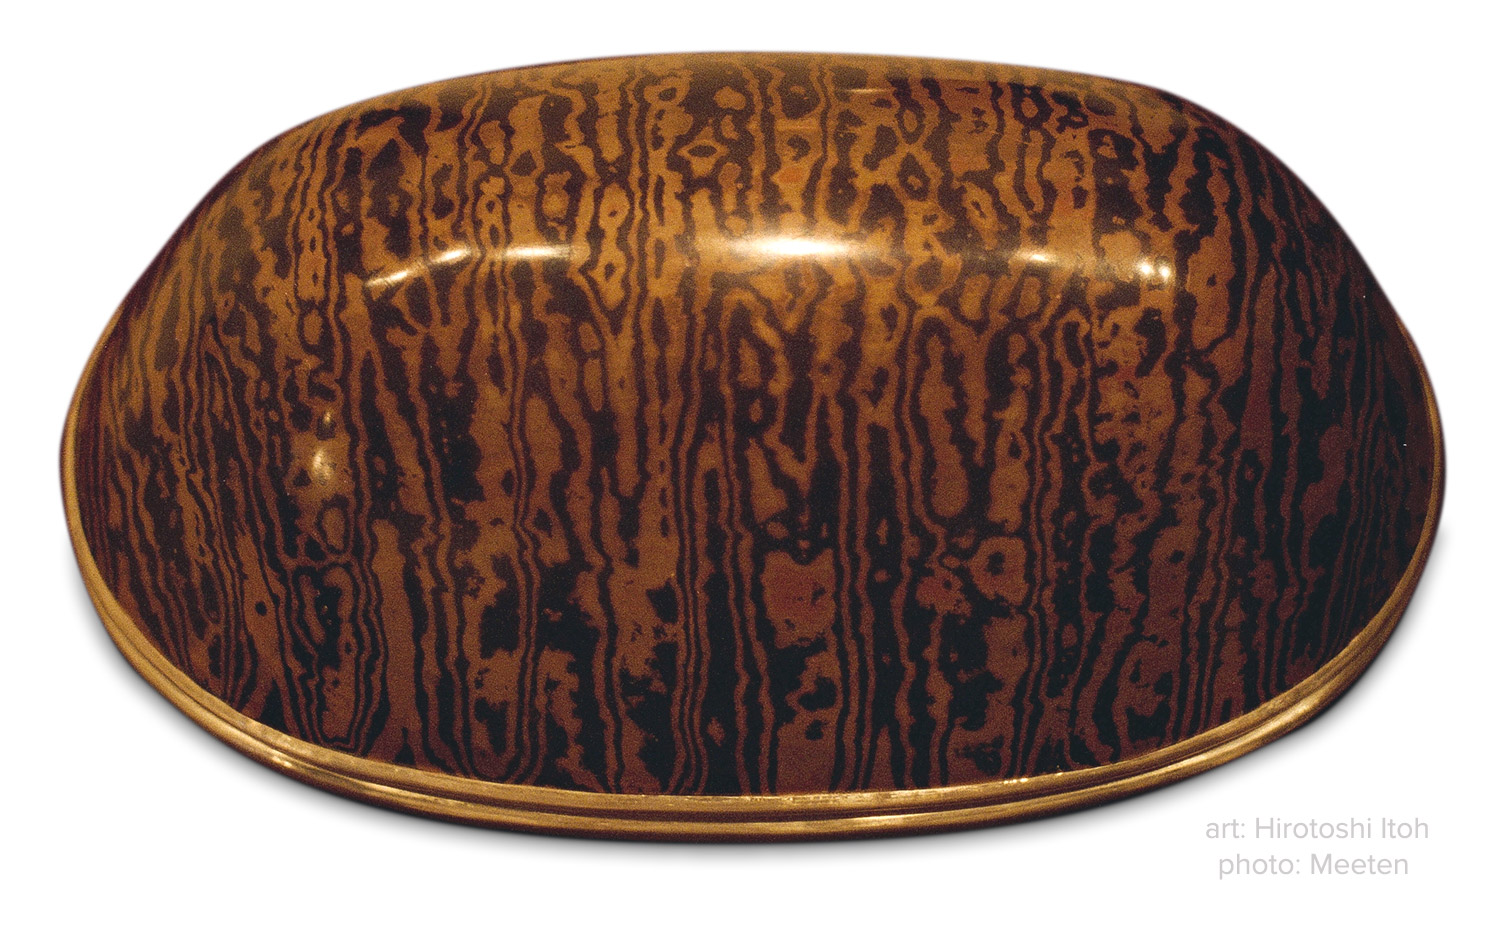 Container by Hirotoshi Itoh. Copper, shakudo and gold. Photo: Meeten.